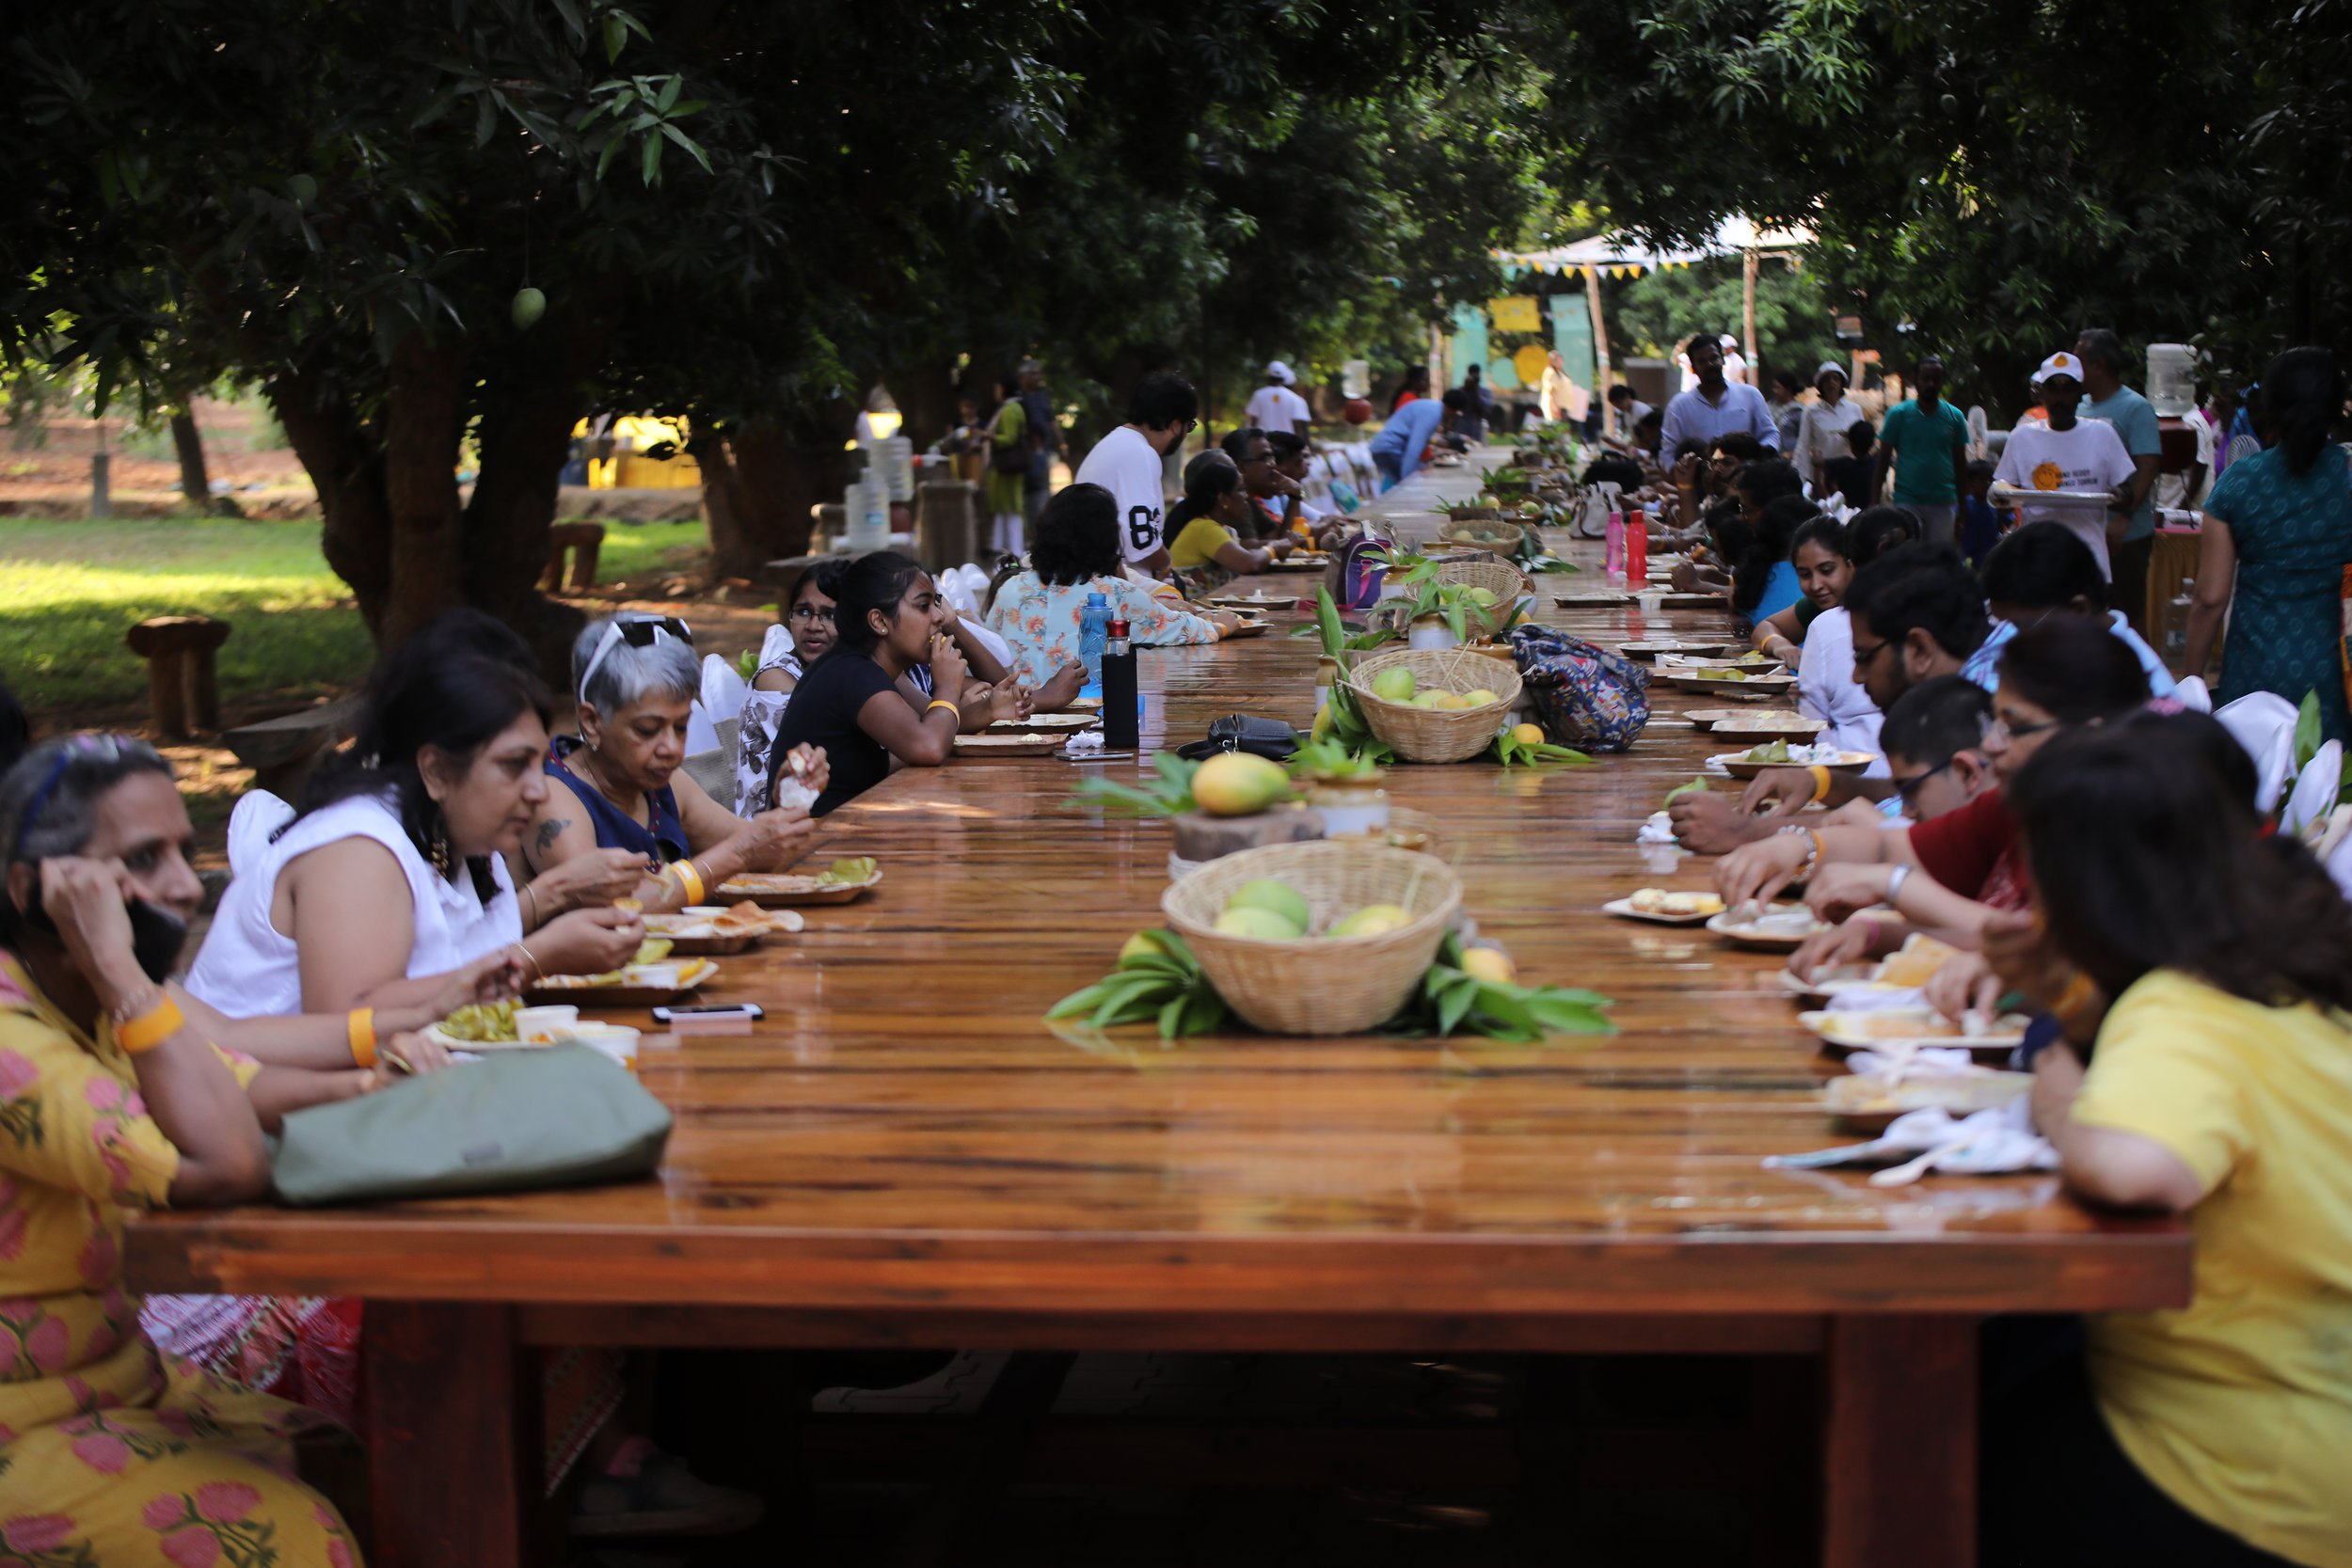 COMMUNITY - Eat and make merry at the 156 ft long communal table.